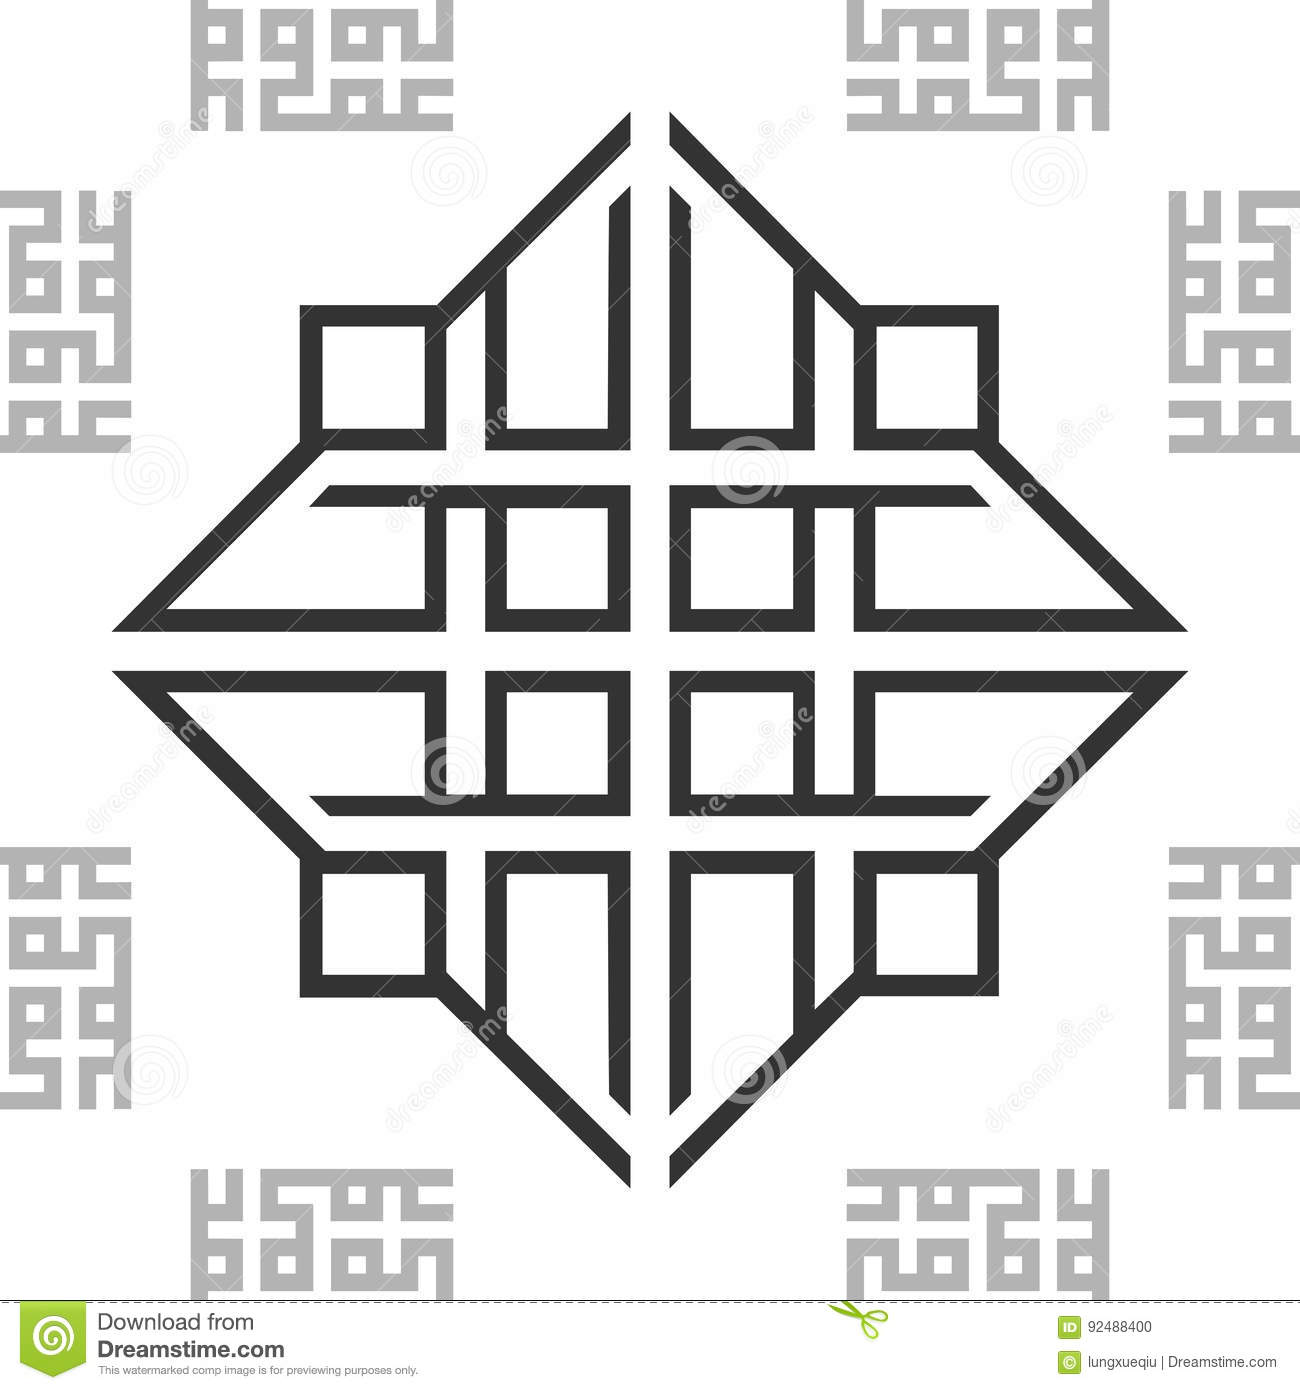 Ornament Black and White BW Oriental Arabic Seamless Pattern Tile Texture Background. Vector.